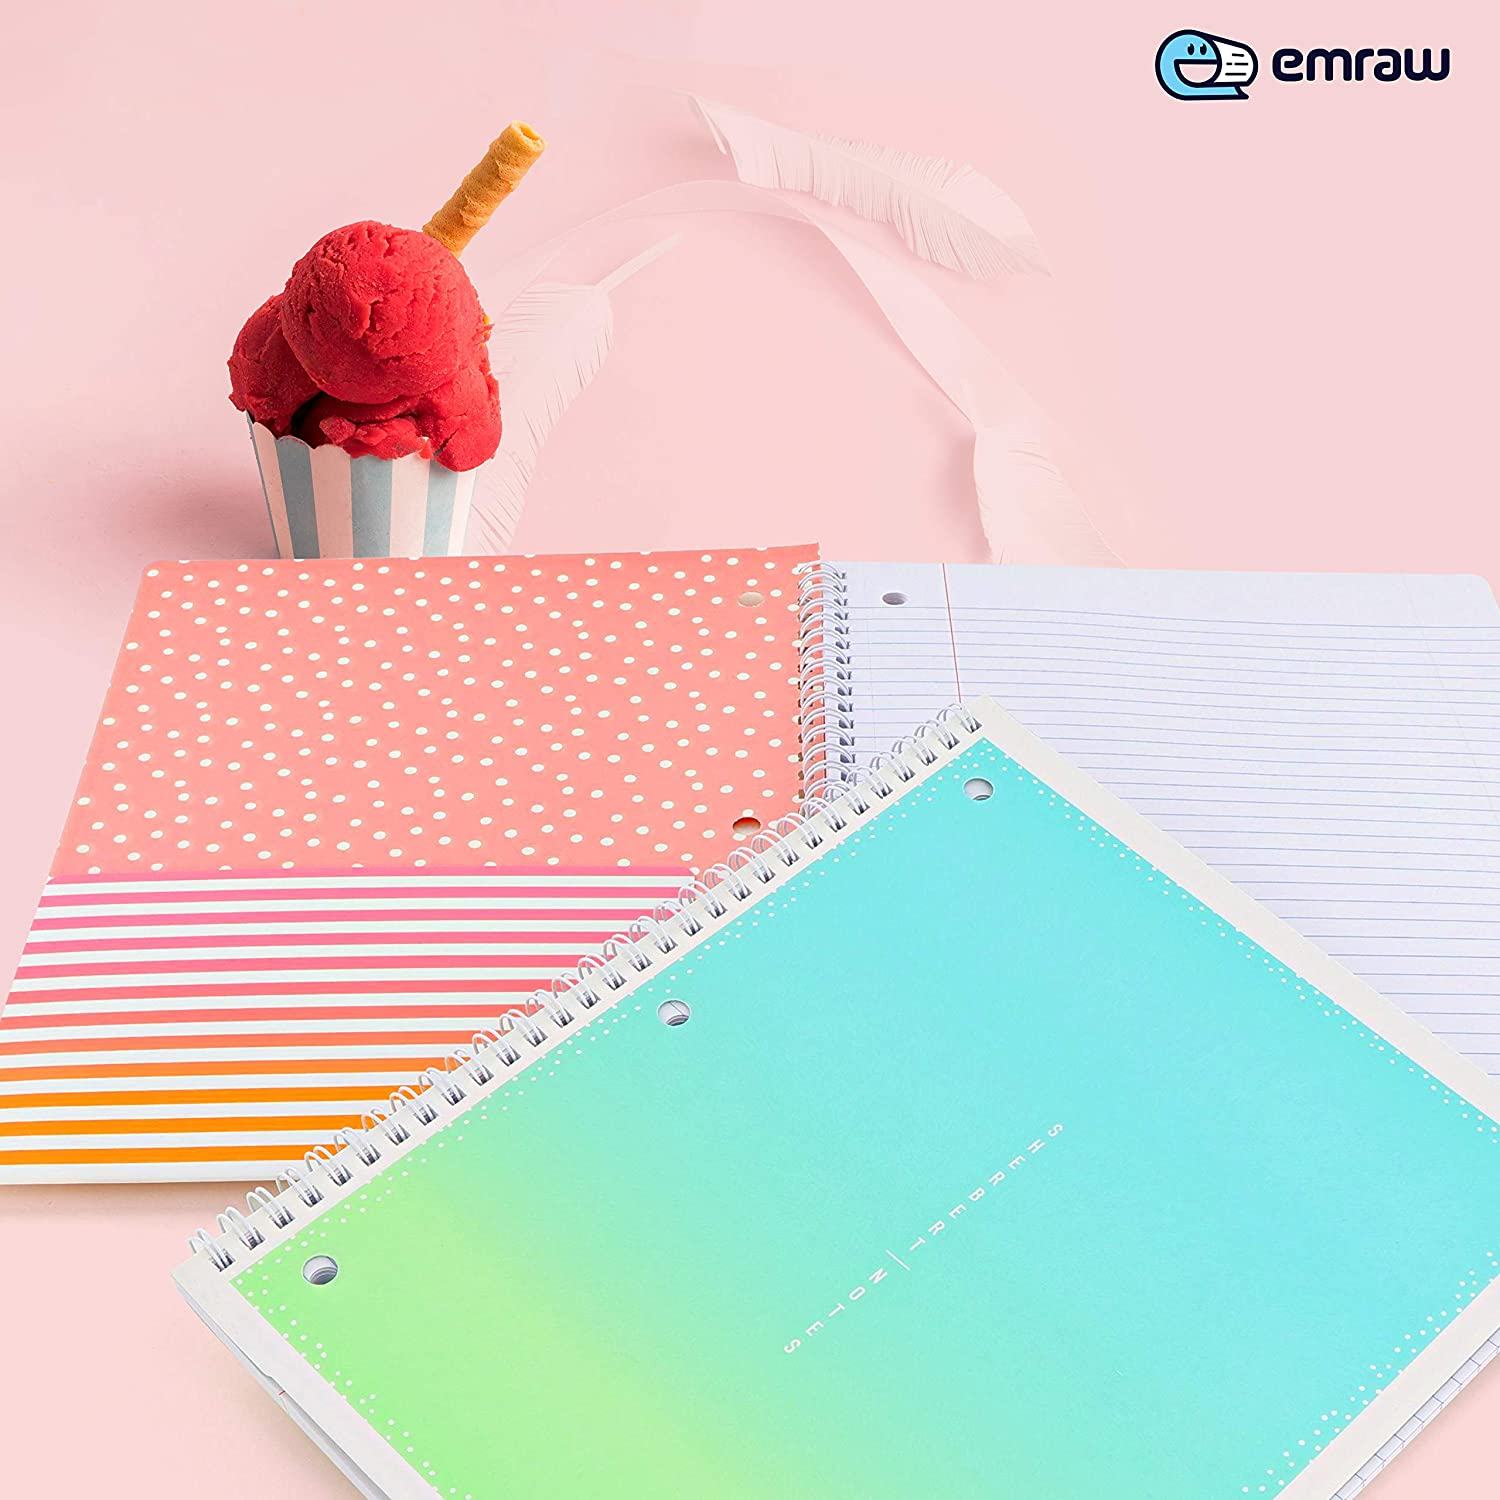 Uniquely Designed 1 Subject Notebook 10.5 x 8.5 College Ruled Paper Board Cover 80 Sheets Perfect for Kids School, Collages, Office and Home Use Sherbert Design Pink & Green (2 Pack) Emraw : Office Products